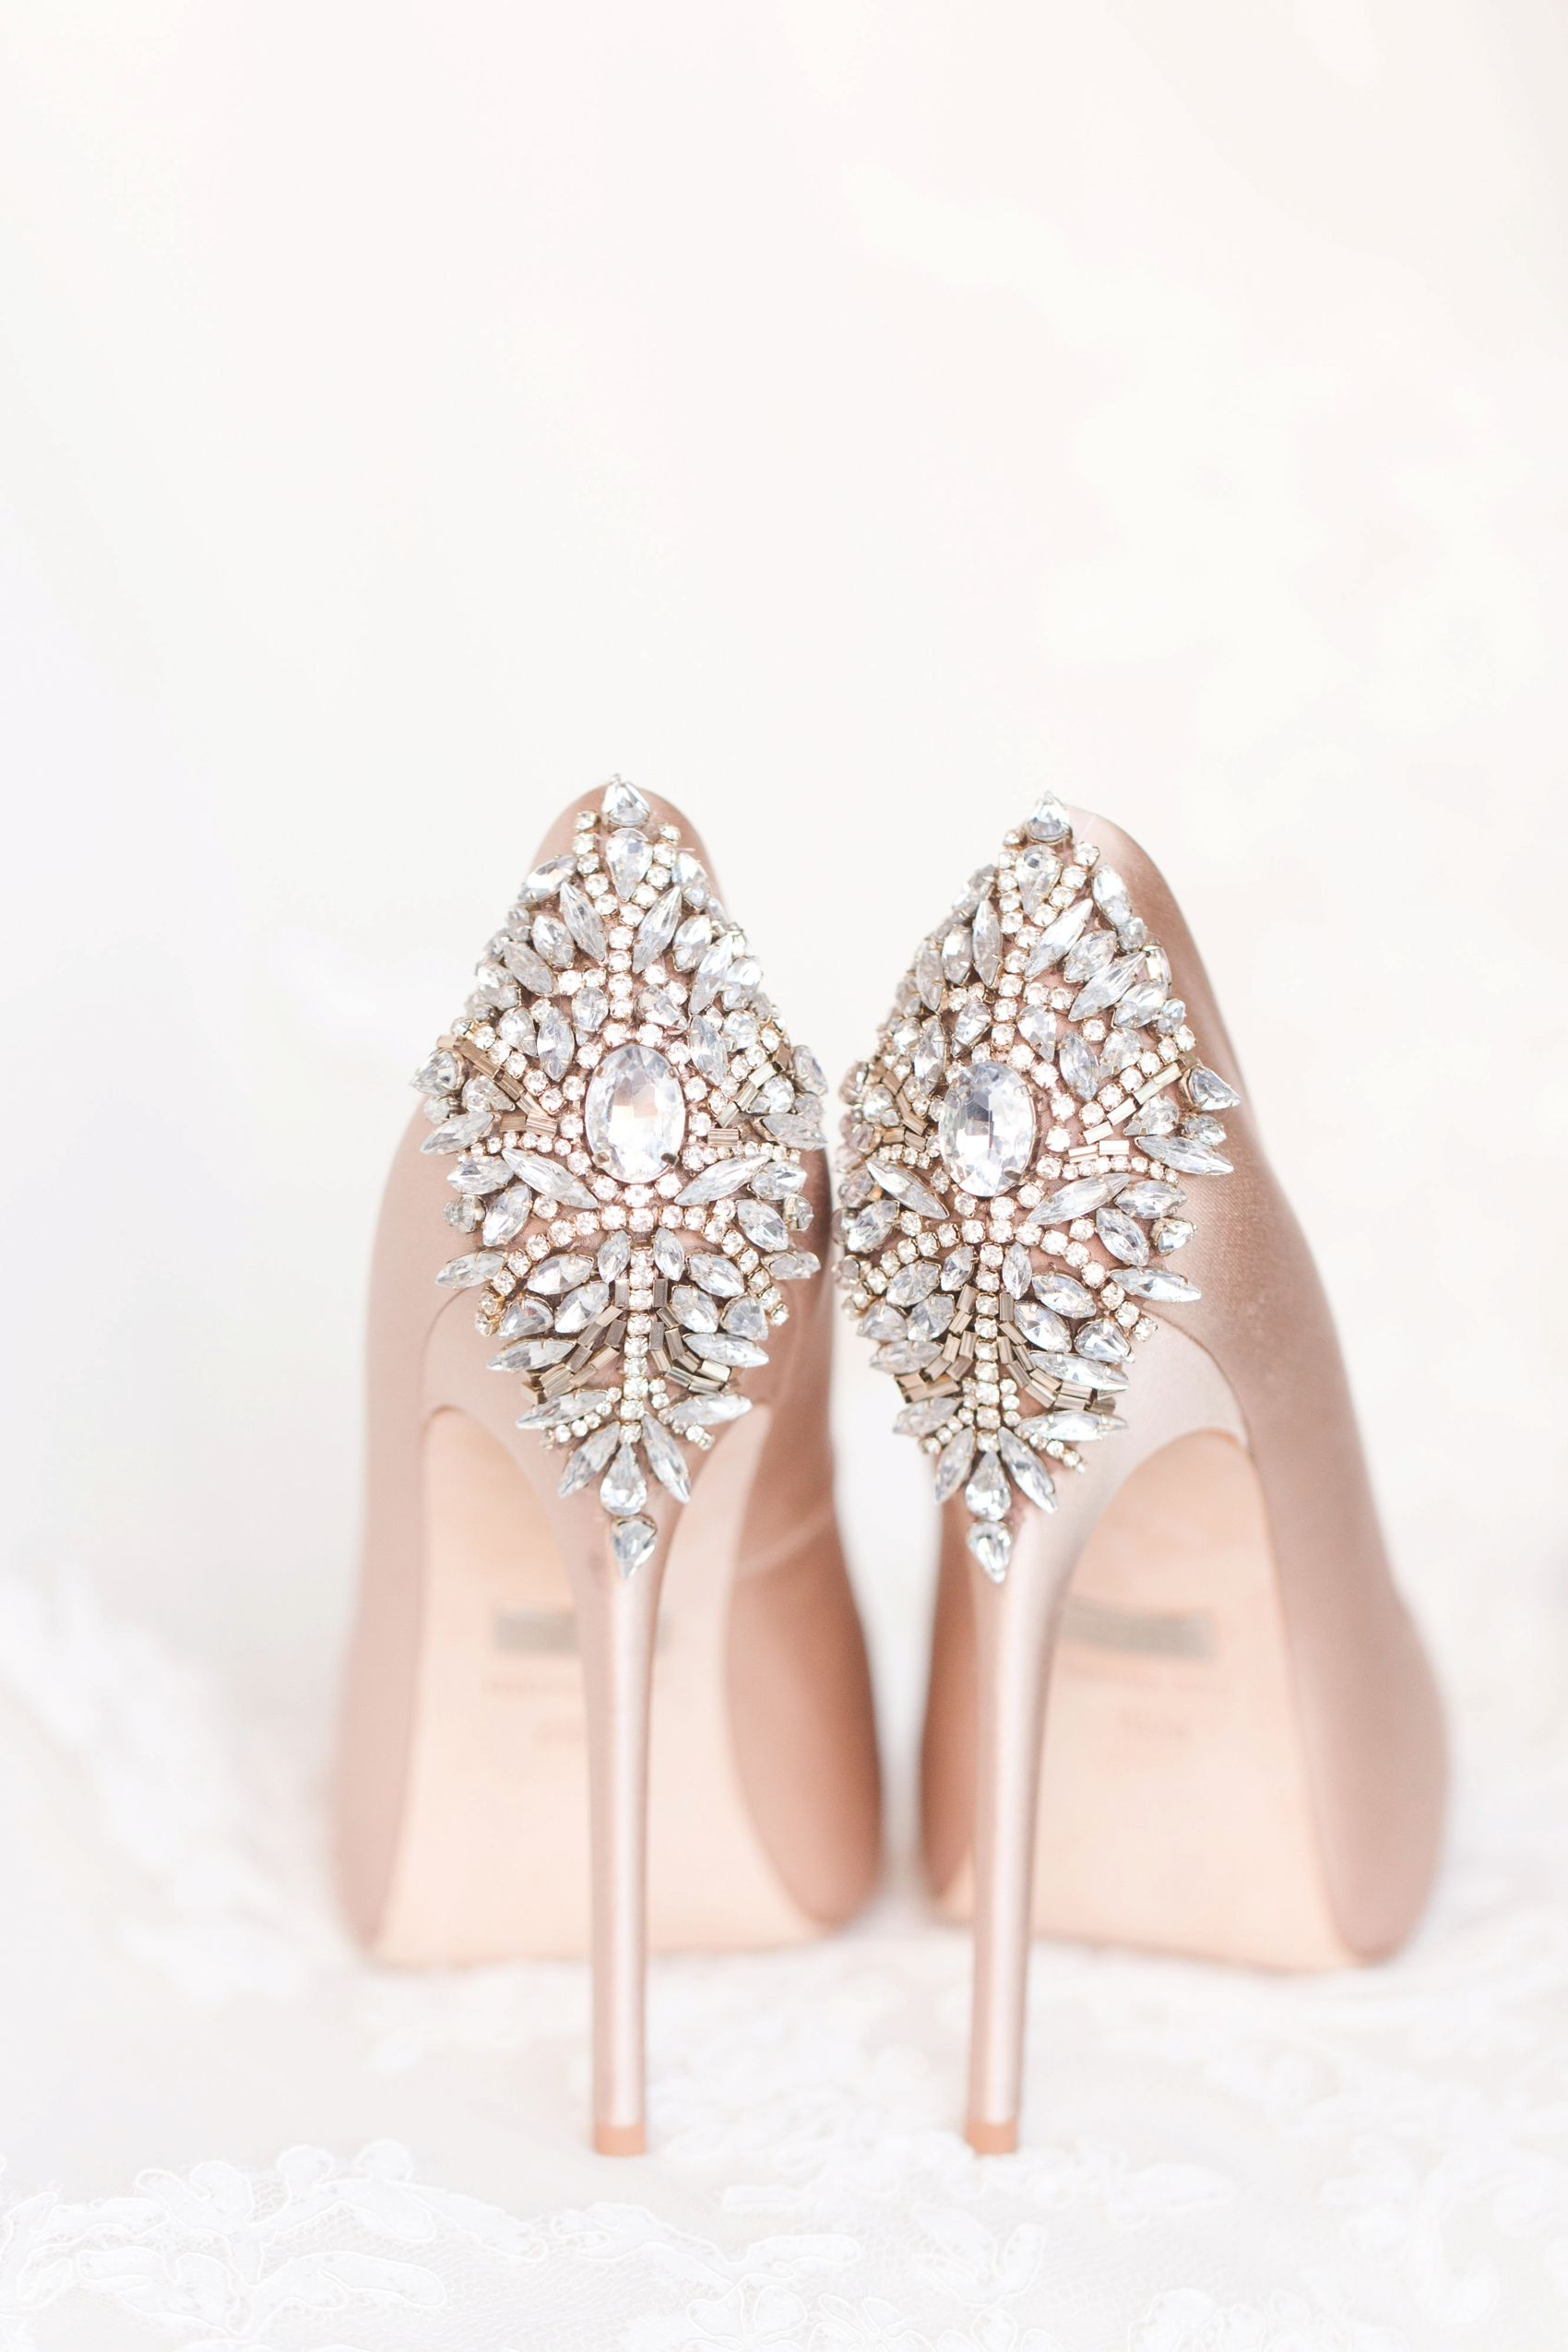 Wedding Workflow (With images) | Wedding shoes, Wedding ...